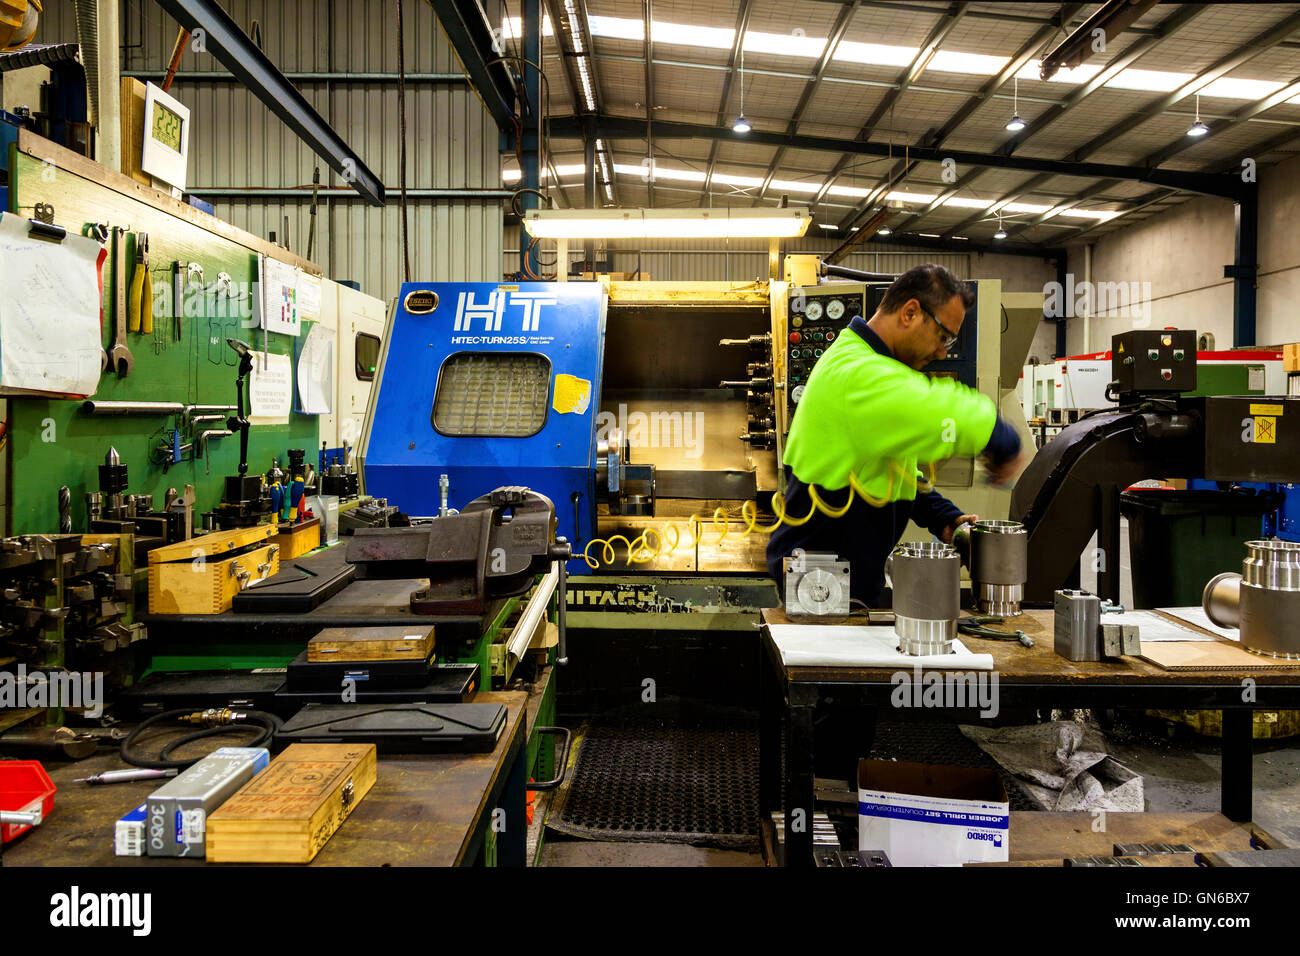 workmen finishing and polishing metal and plastic components ahead of further processing. - Stock Image